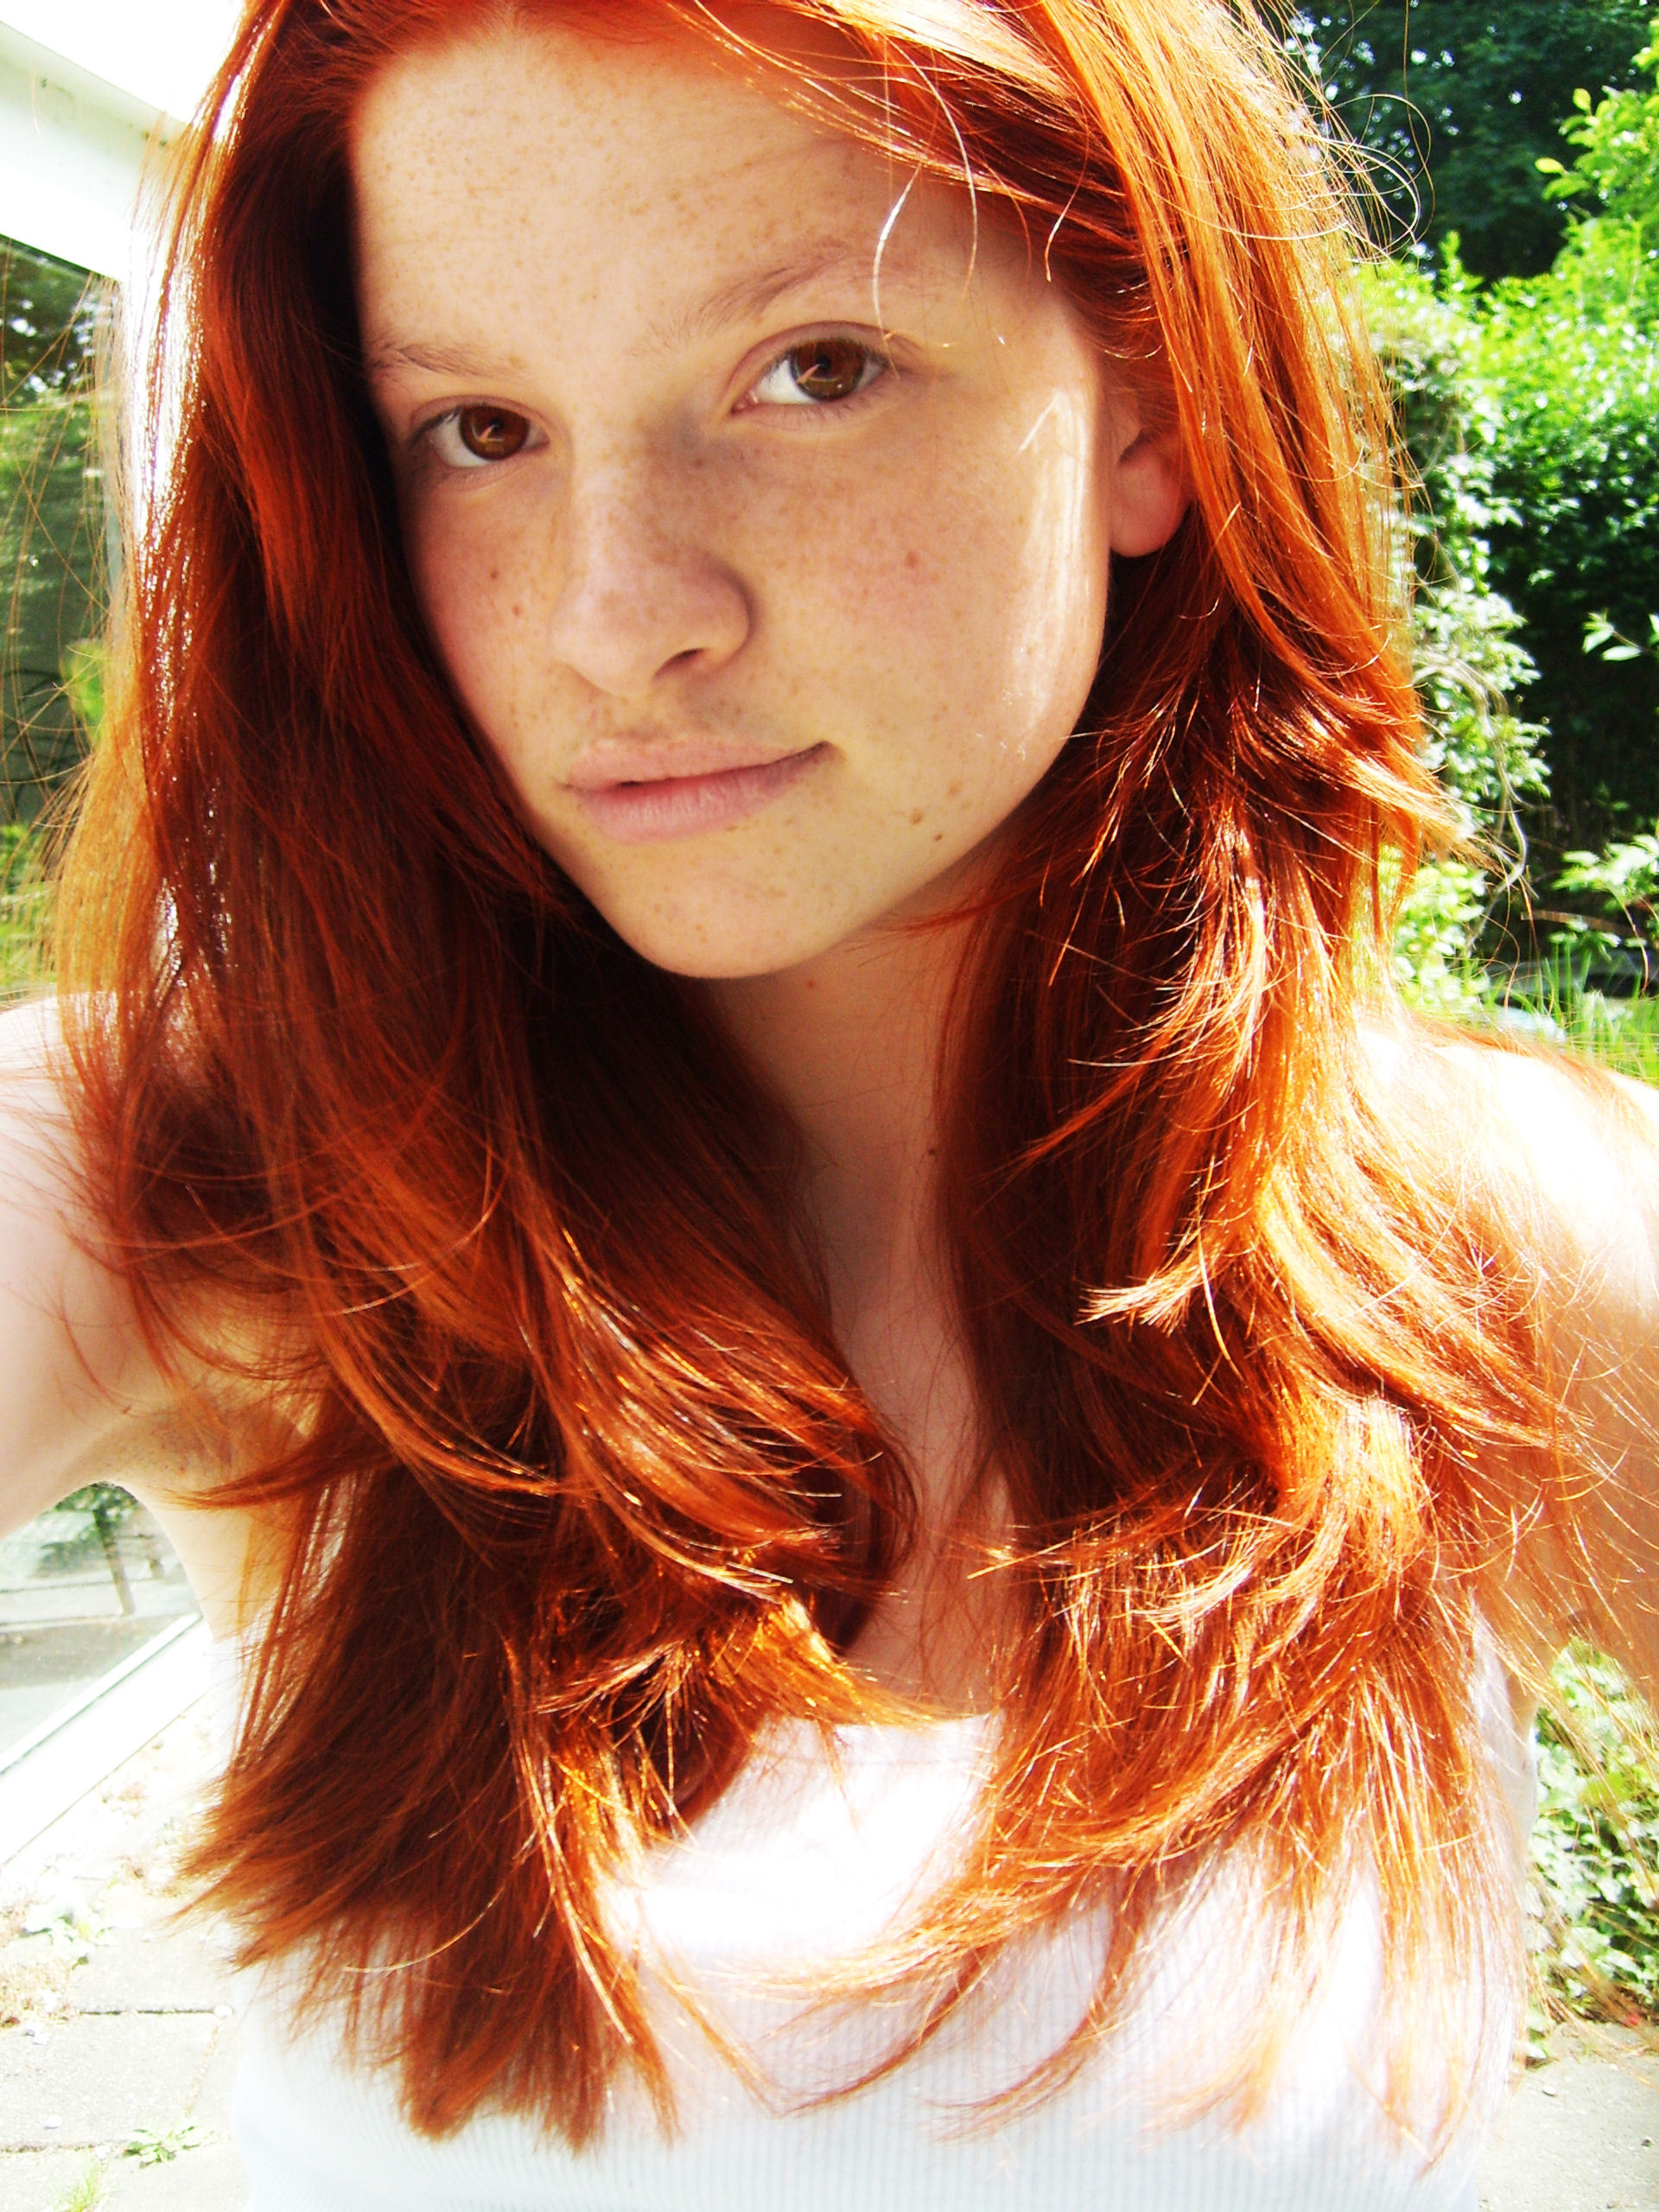 redheads freckles self shot HD Wallpaper